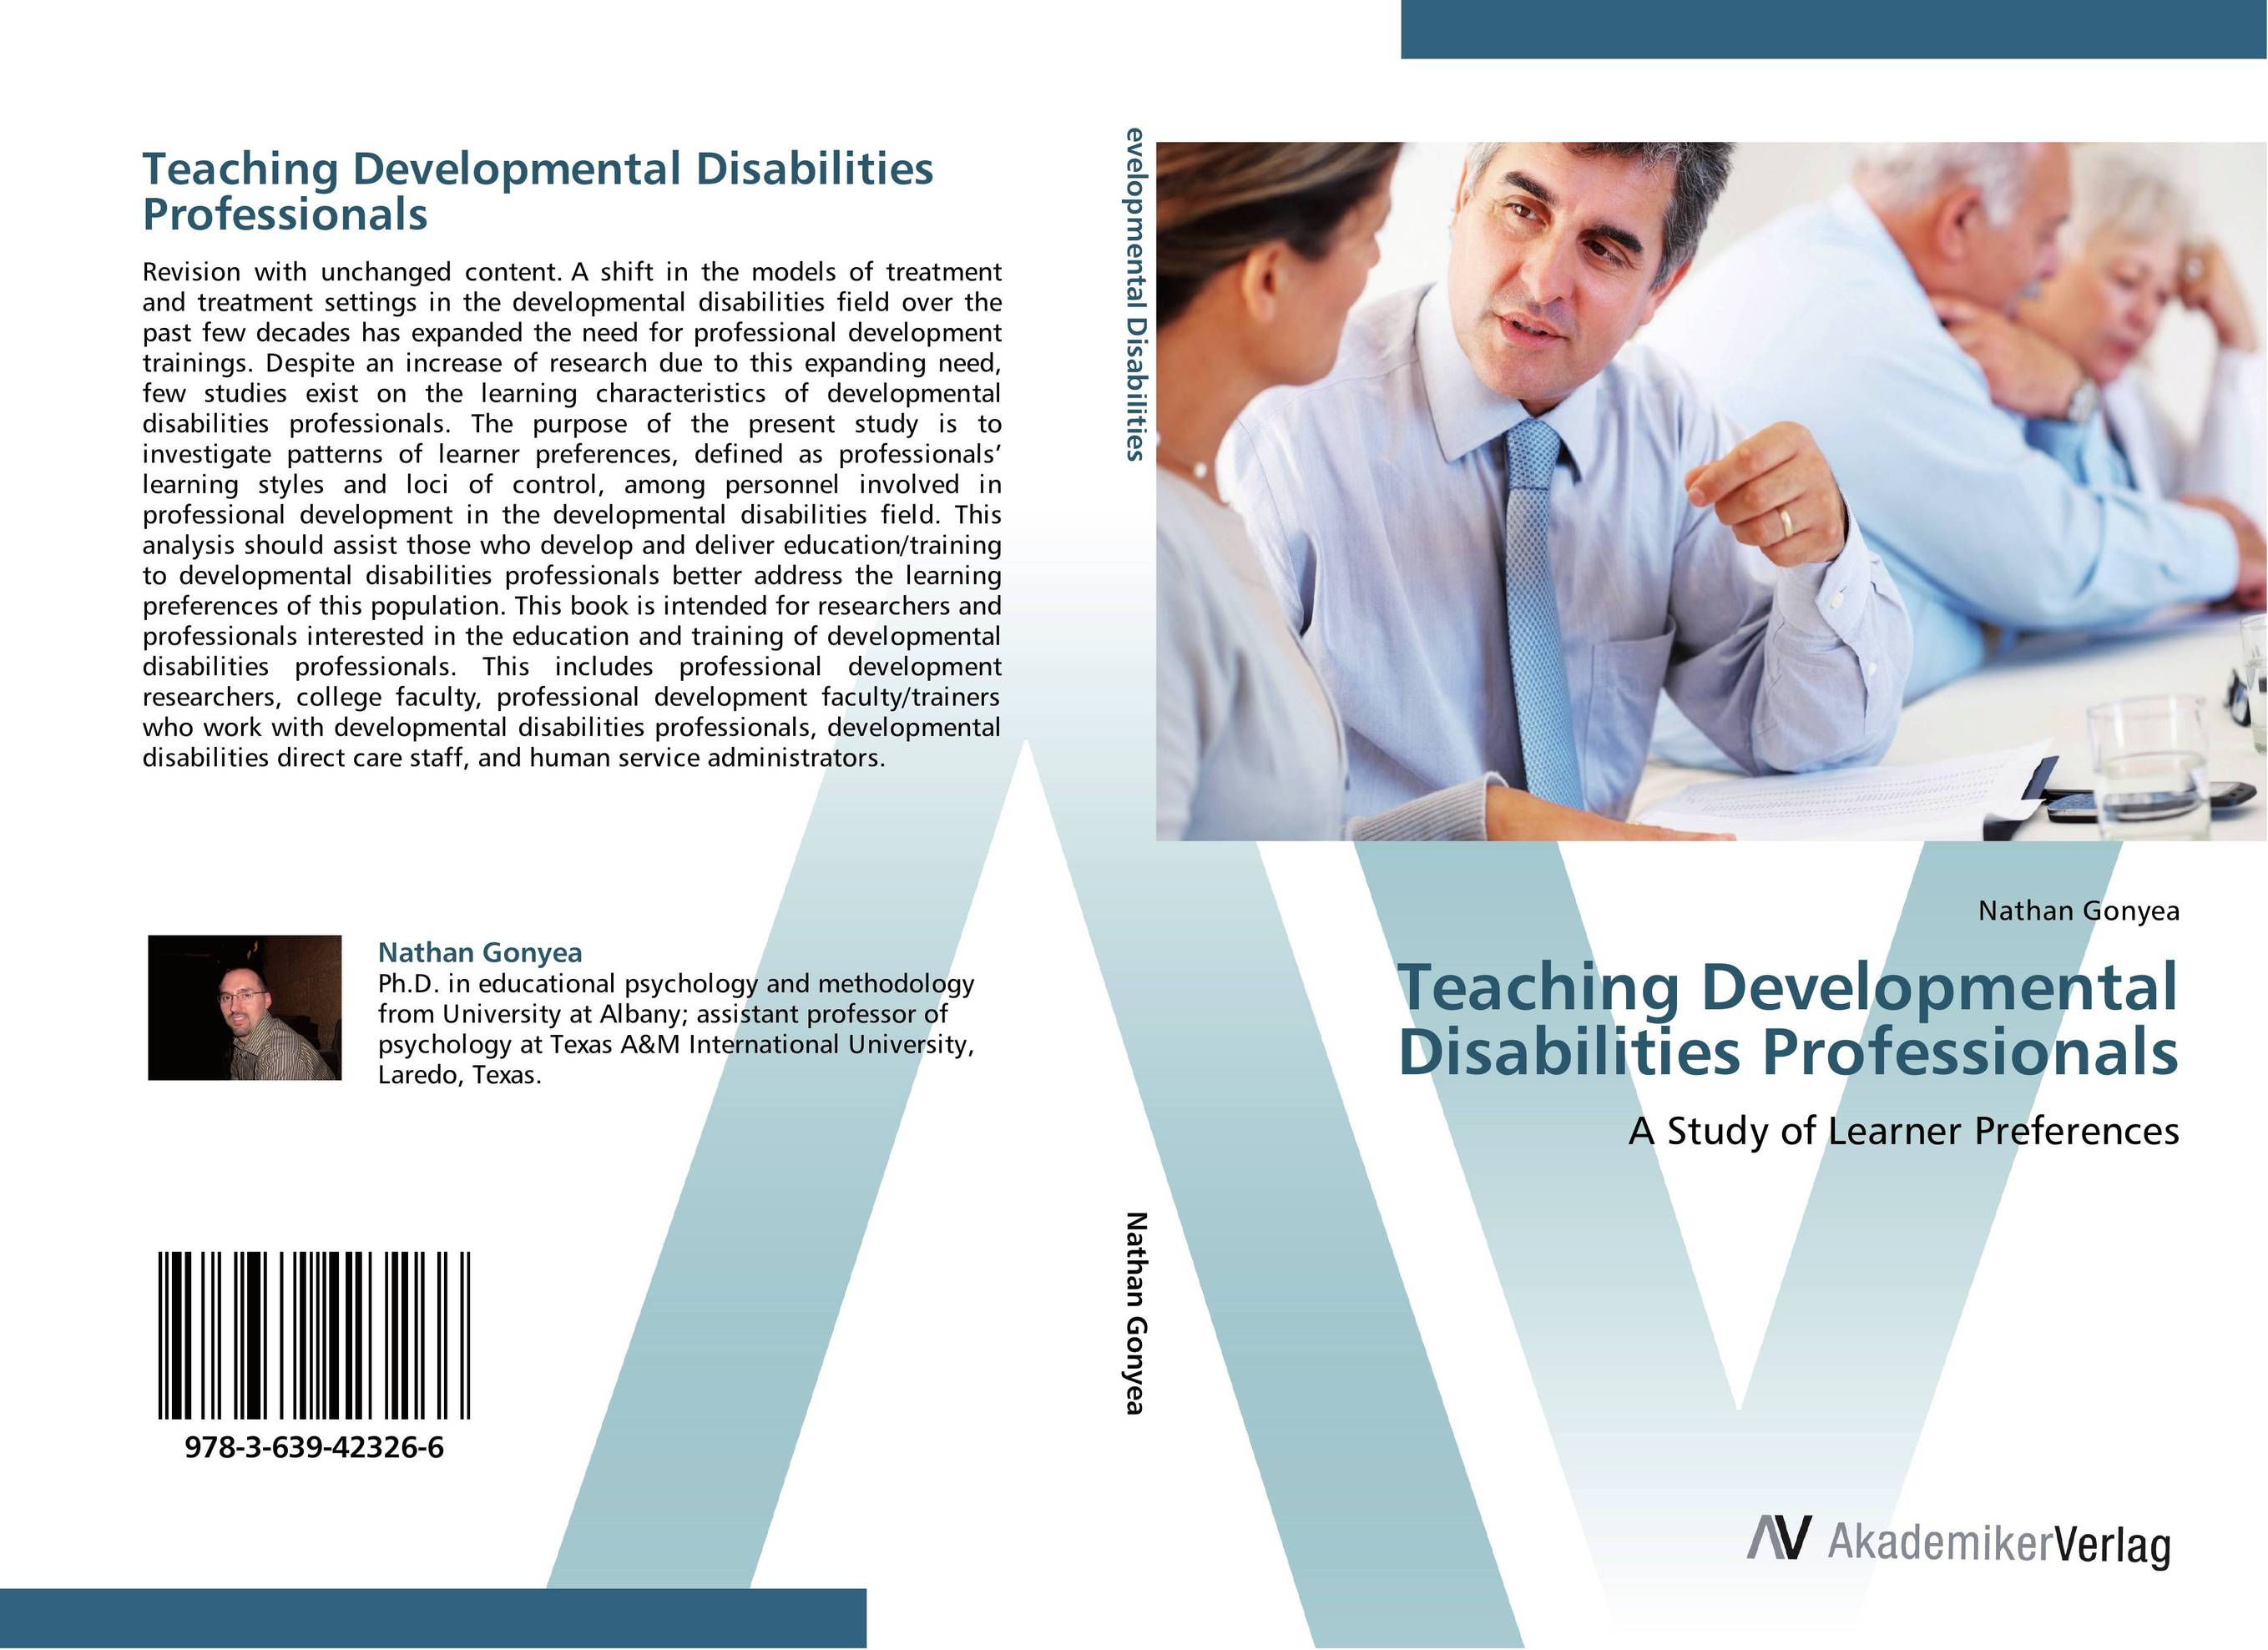 Teaching Developmental Disabilities Professionals developmental disabilities from childhood to adulthood – what works for psychiatrists in community and institutional settings